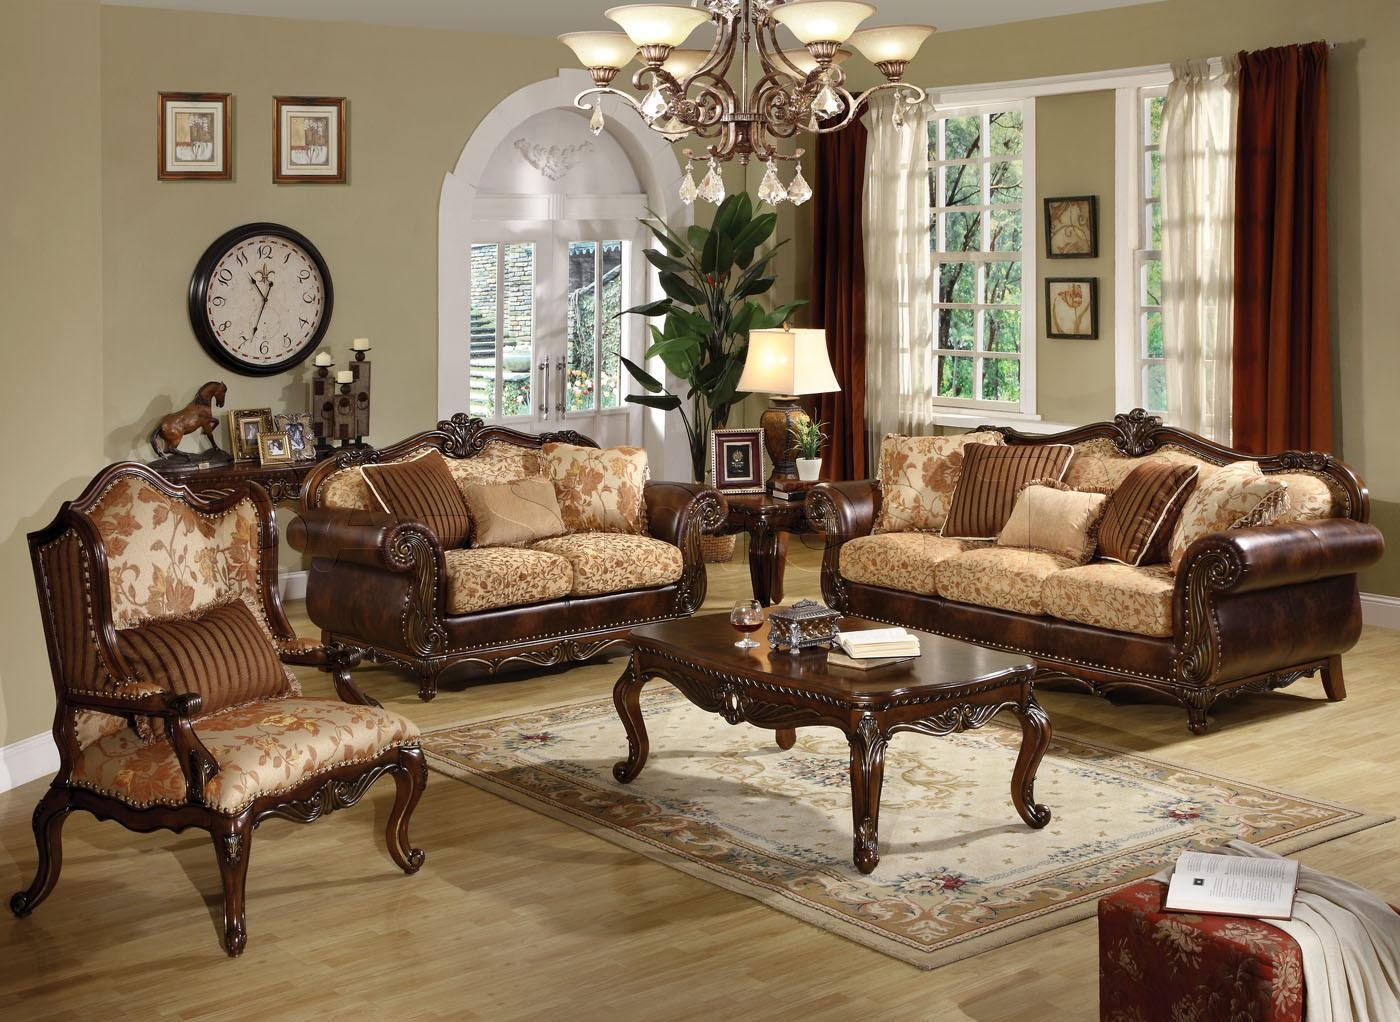 Sofa Chair Sets, Brown Chairs For Living Room With Torricella For Traditional Sofas And Chairs (Image 9 of 20)